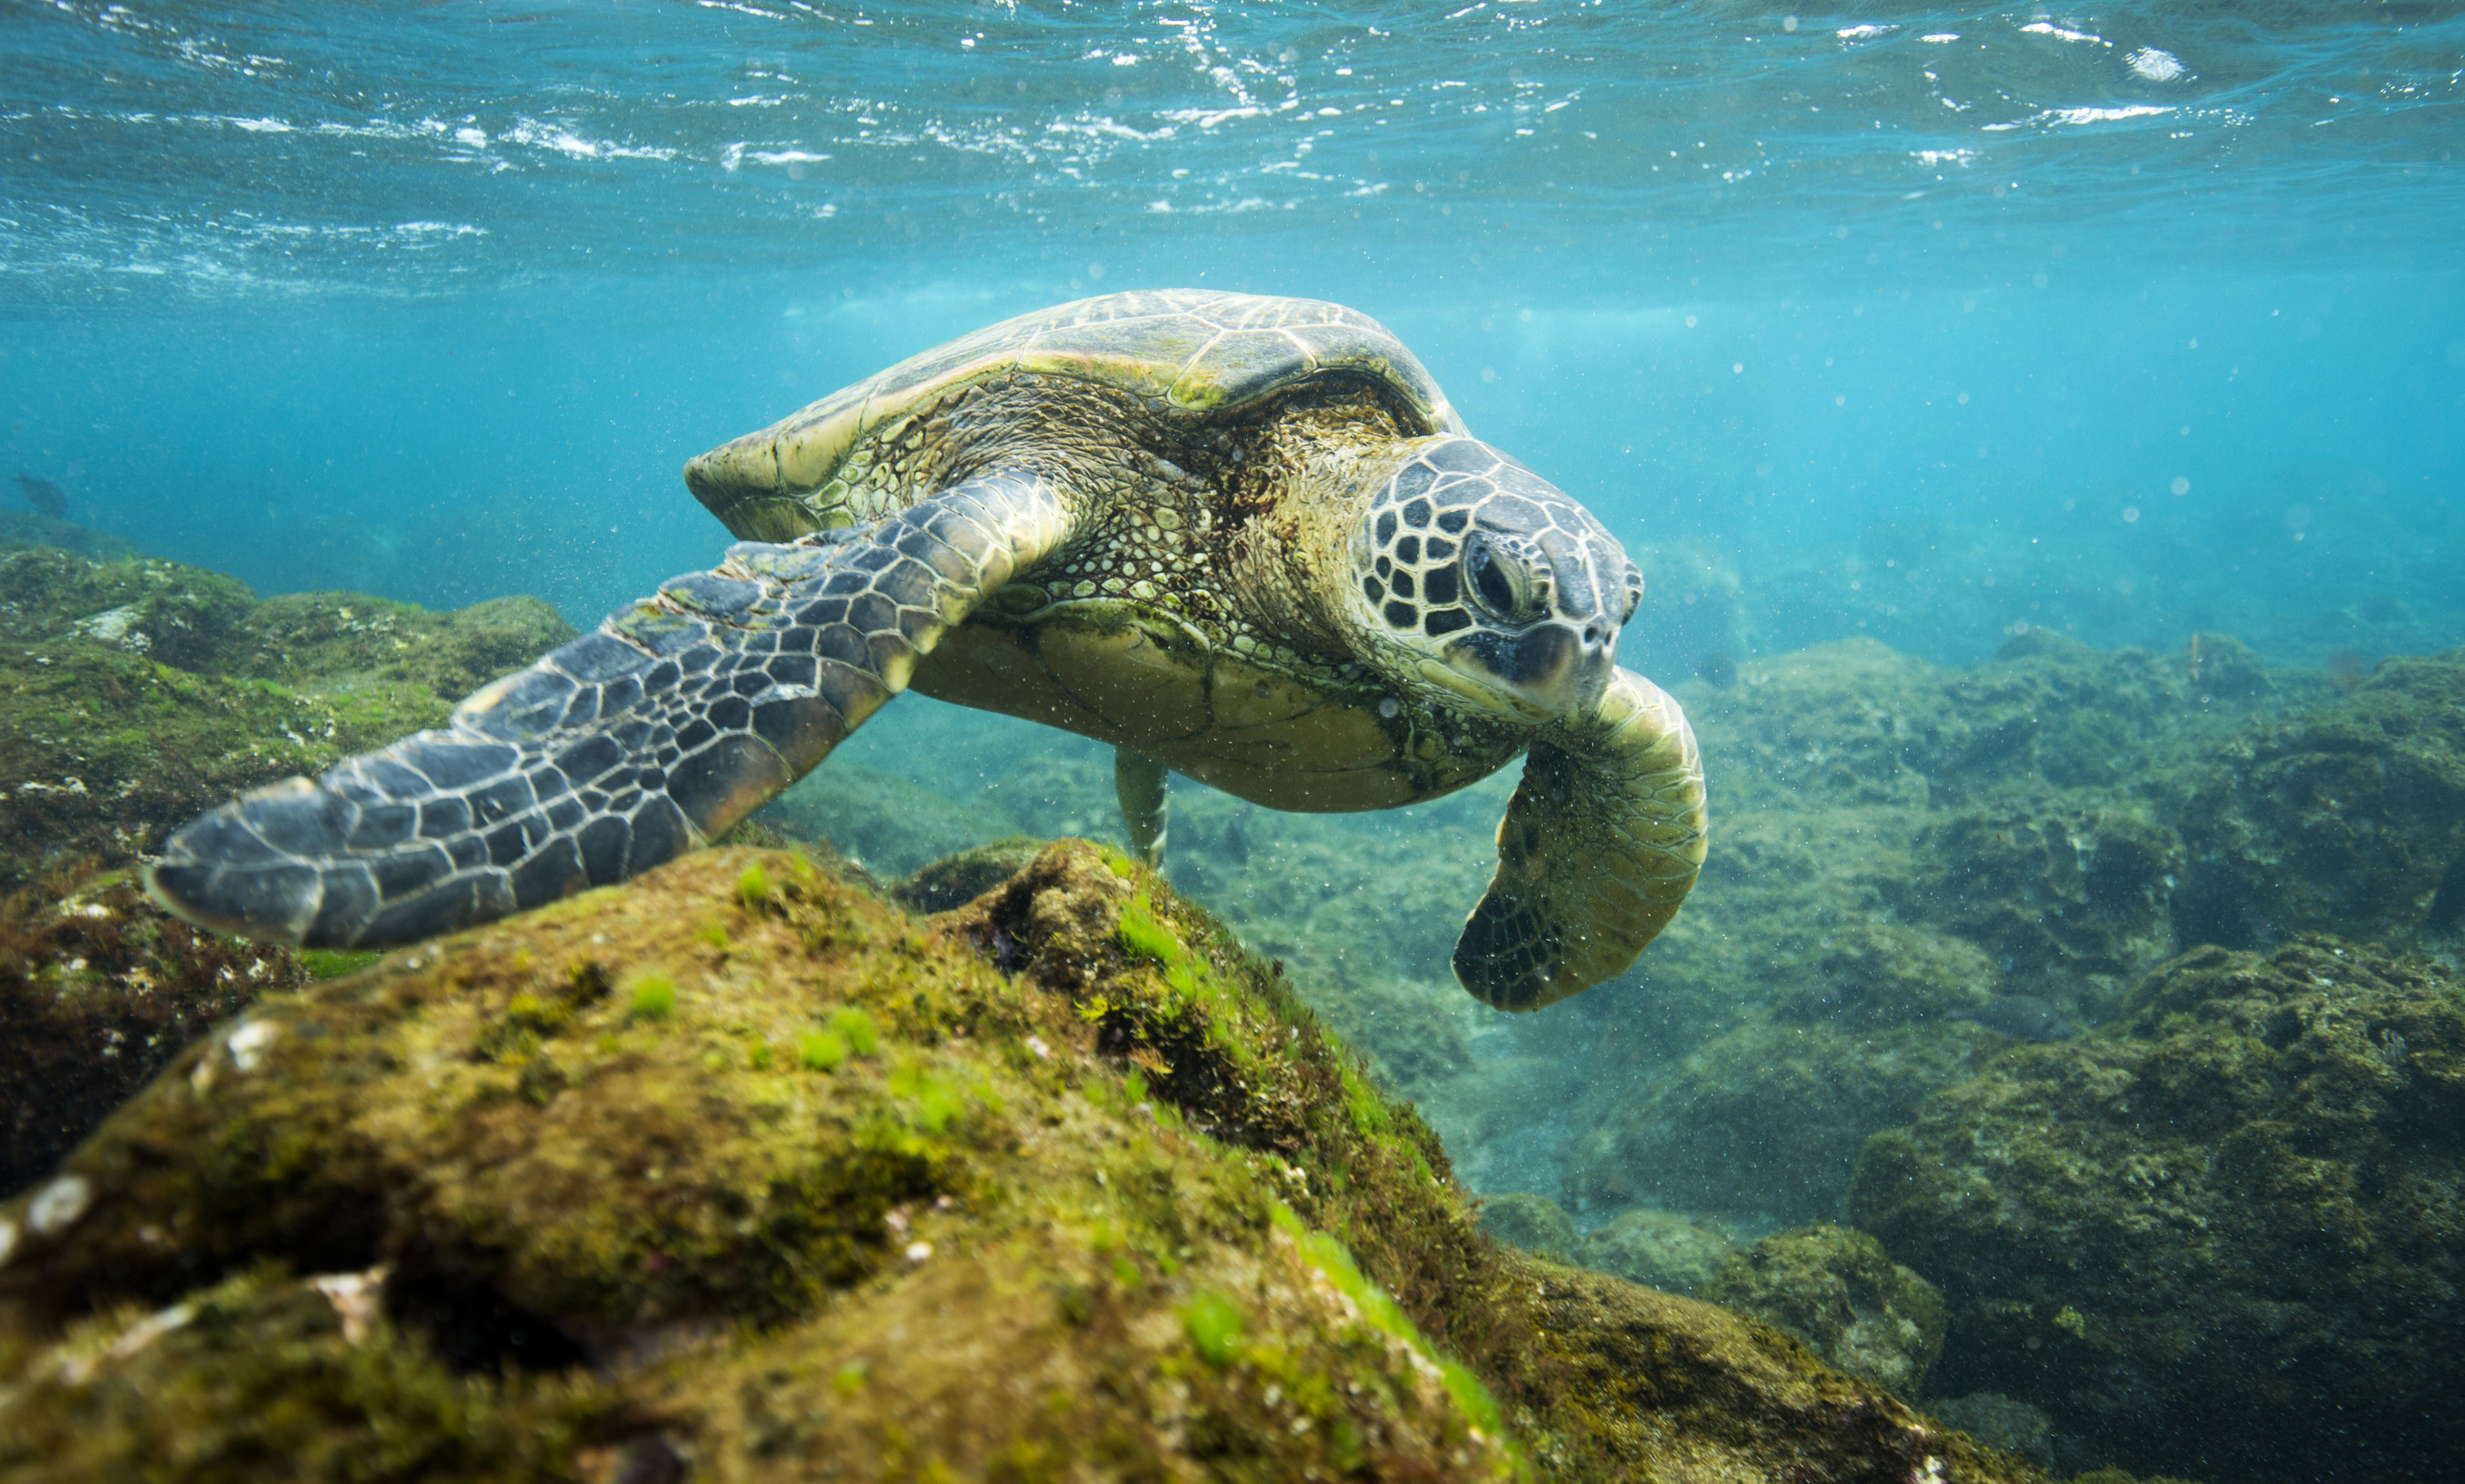 Sea turtle, Lee Gillenwater, The Pew Charitable Trusts